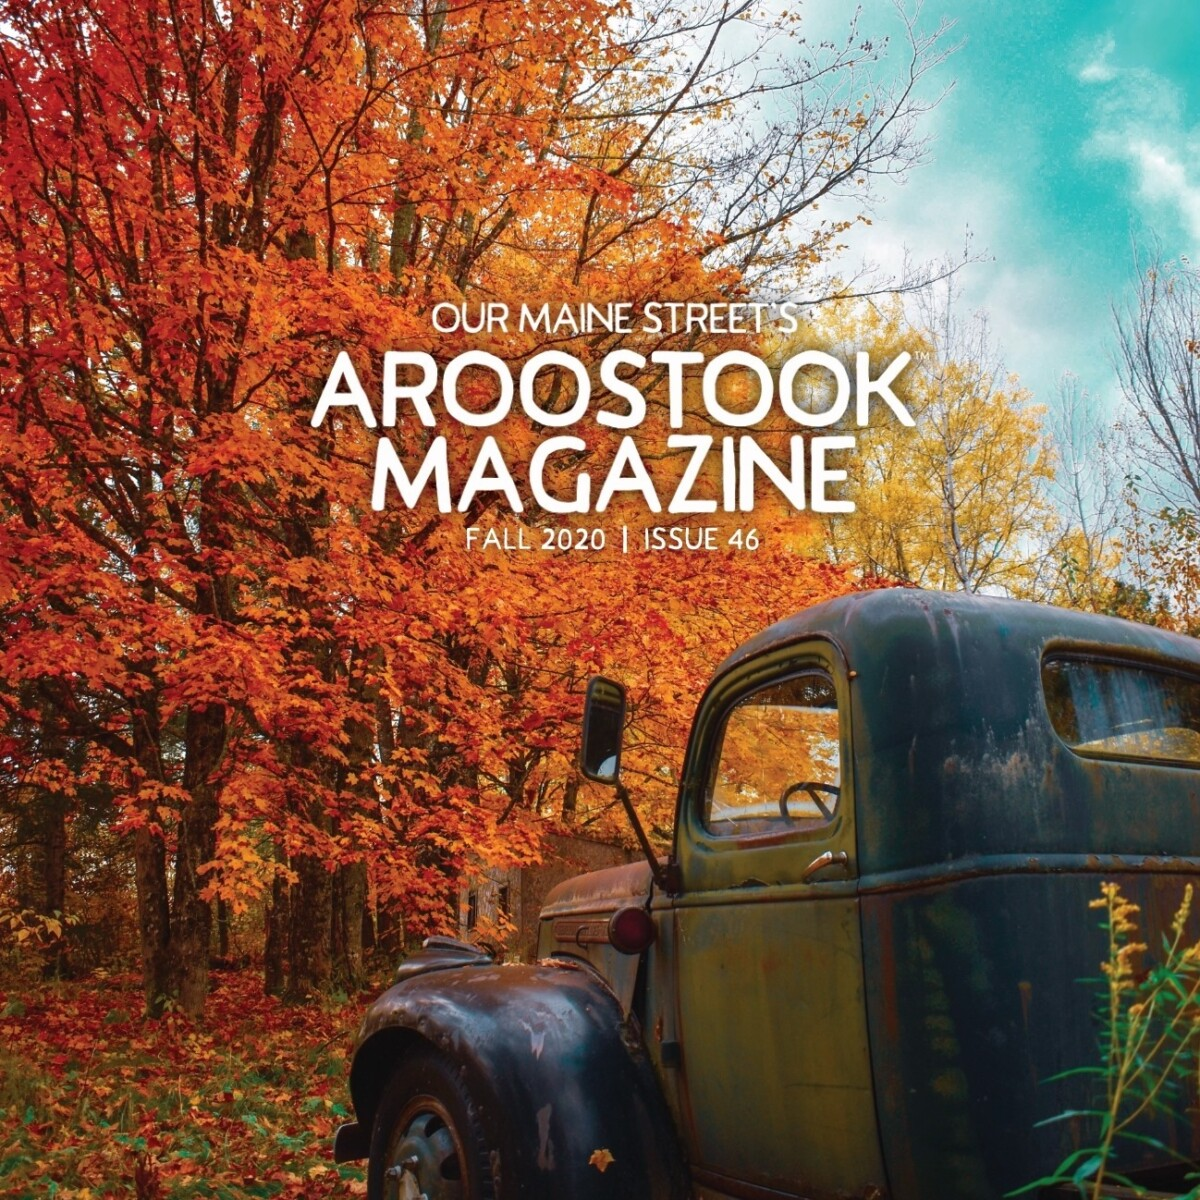 Our Maine Street's Aroostook Magazine Fall 2020 Cover (photo by Dawn Larrabee)